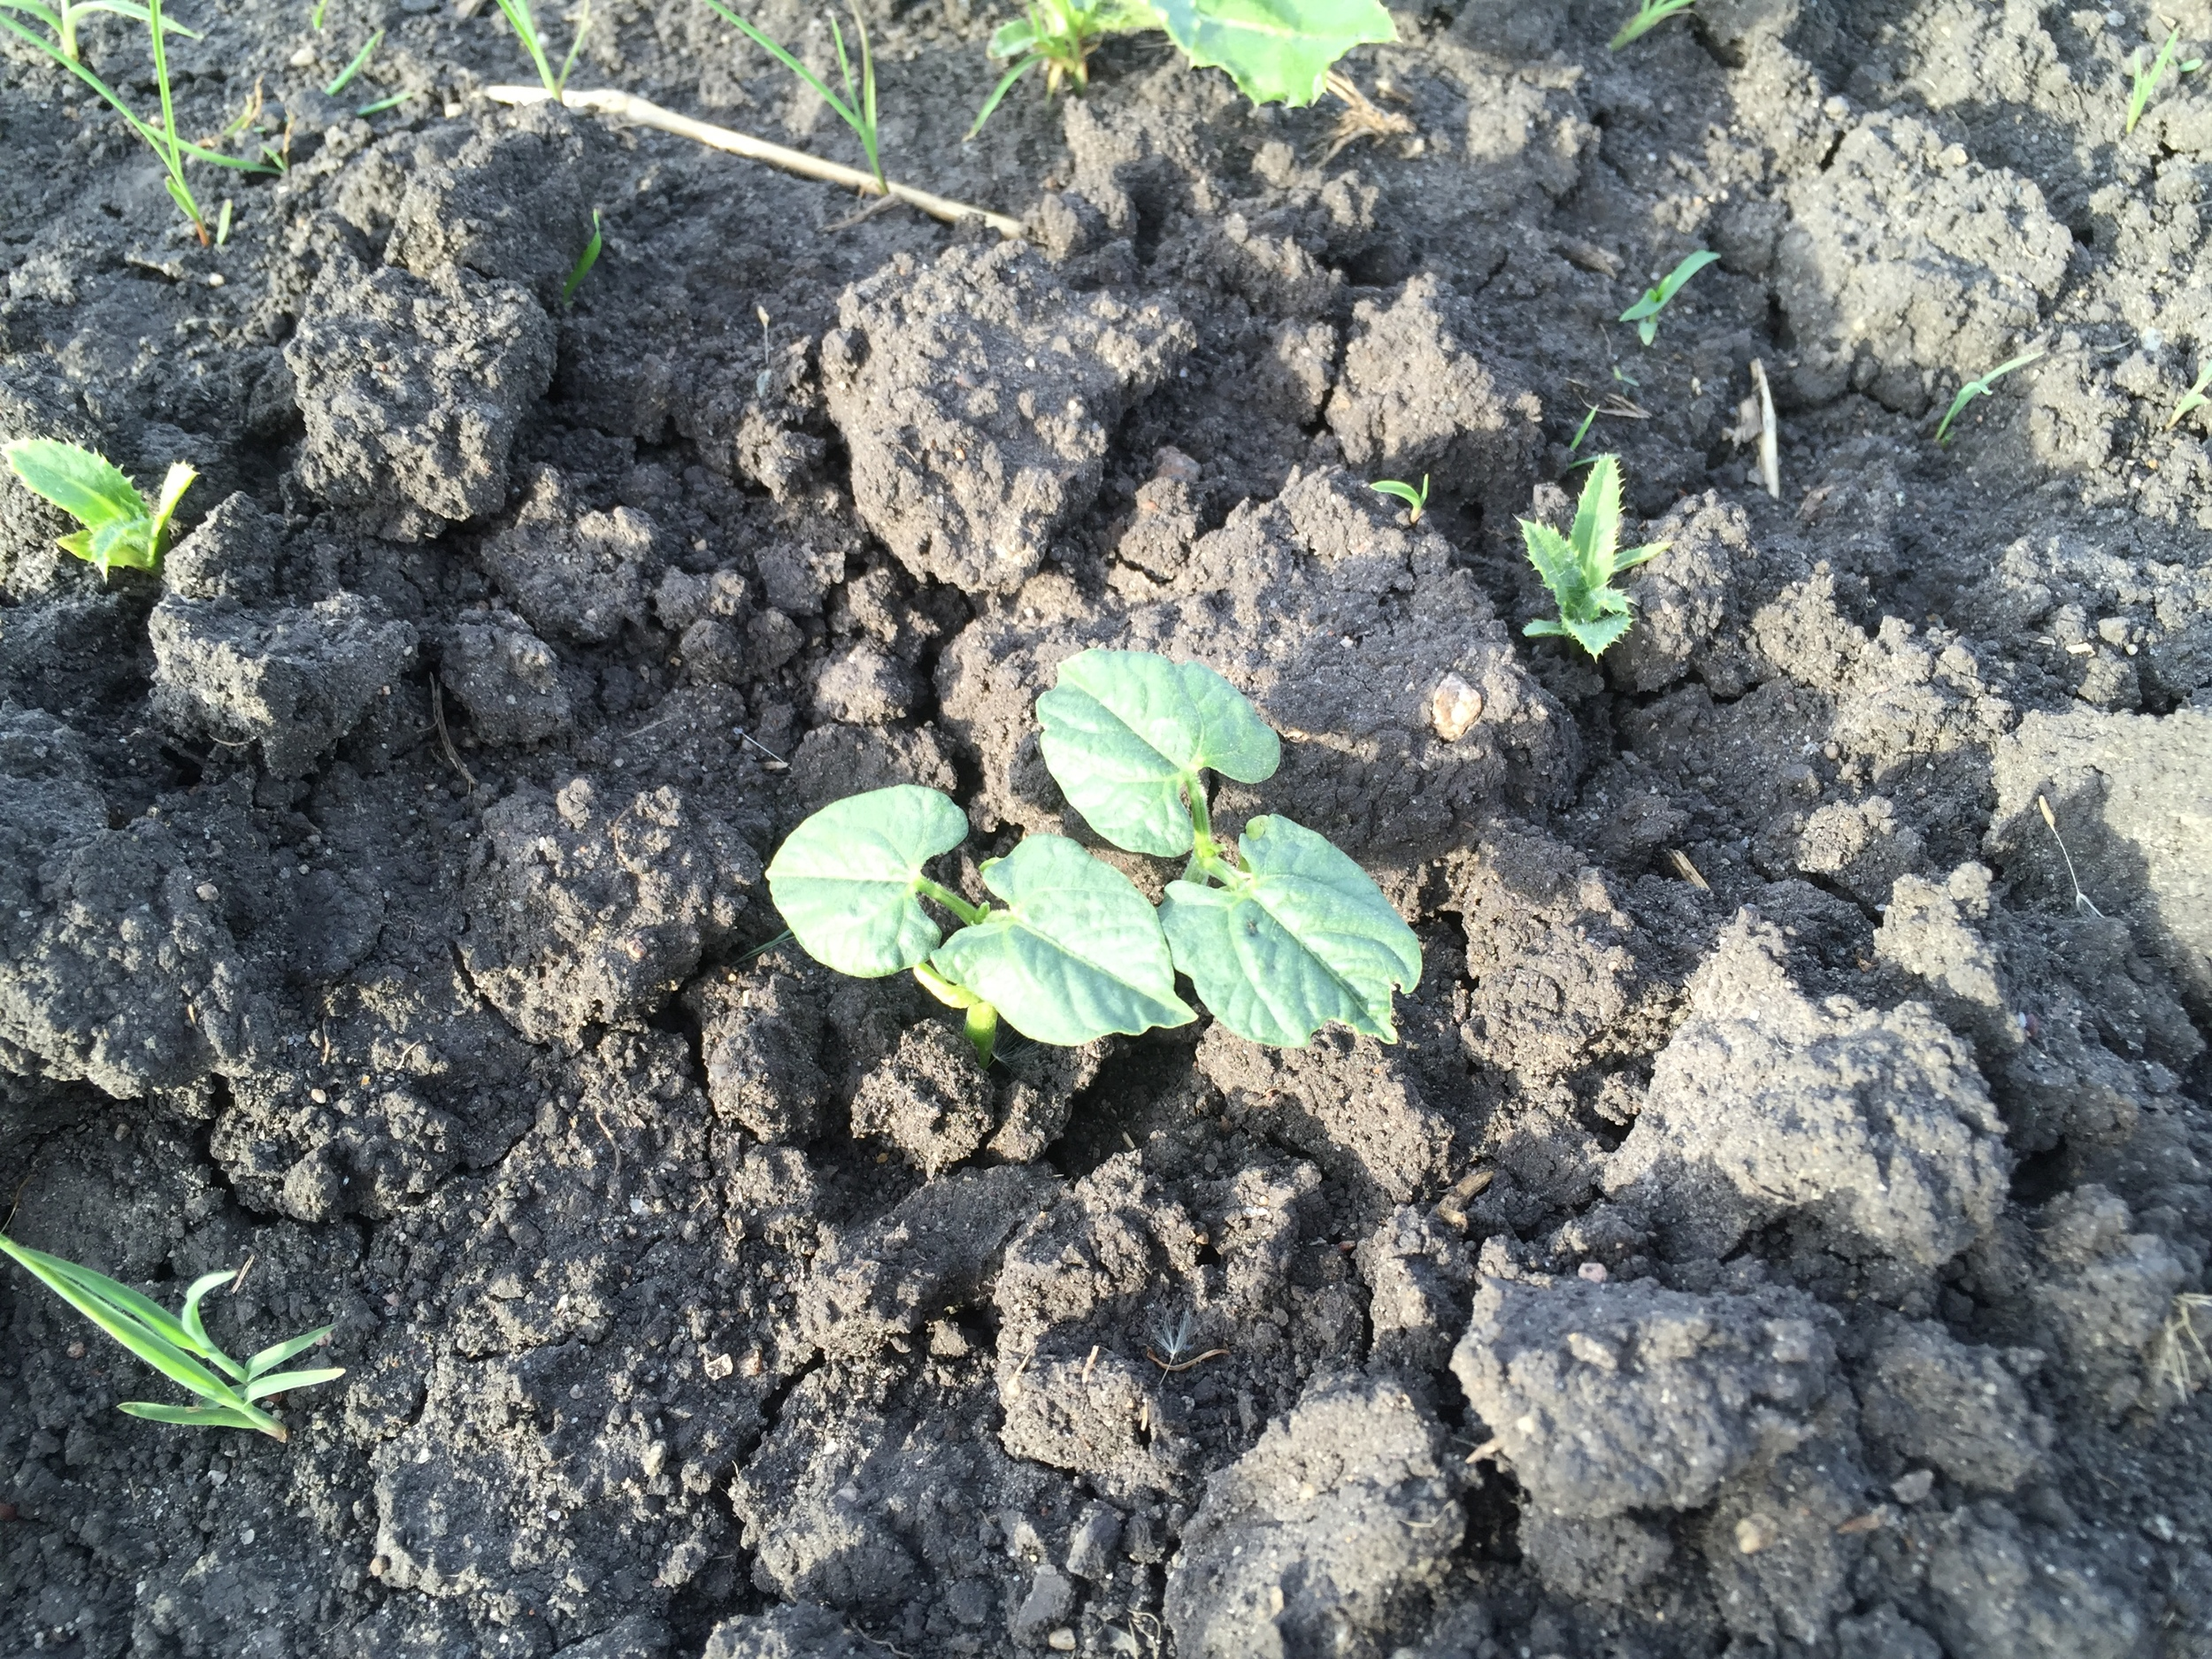 Green Beans emerging from the soil.